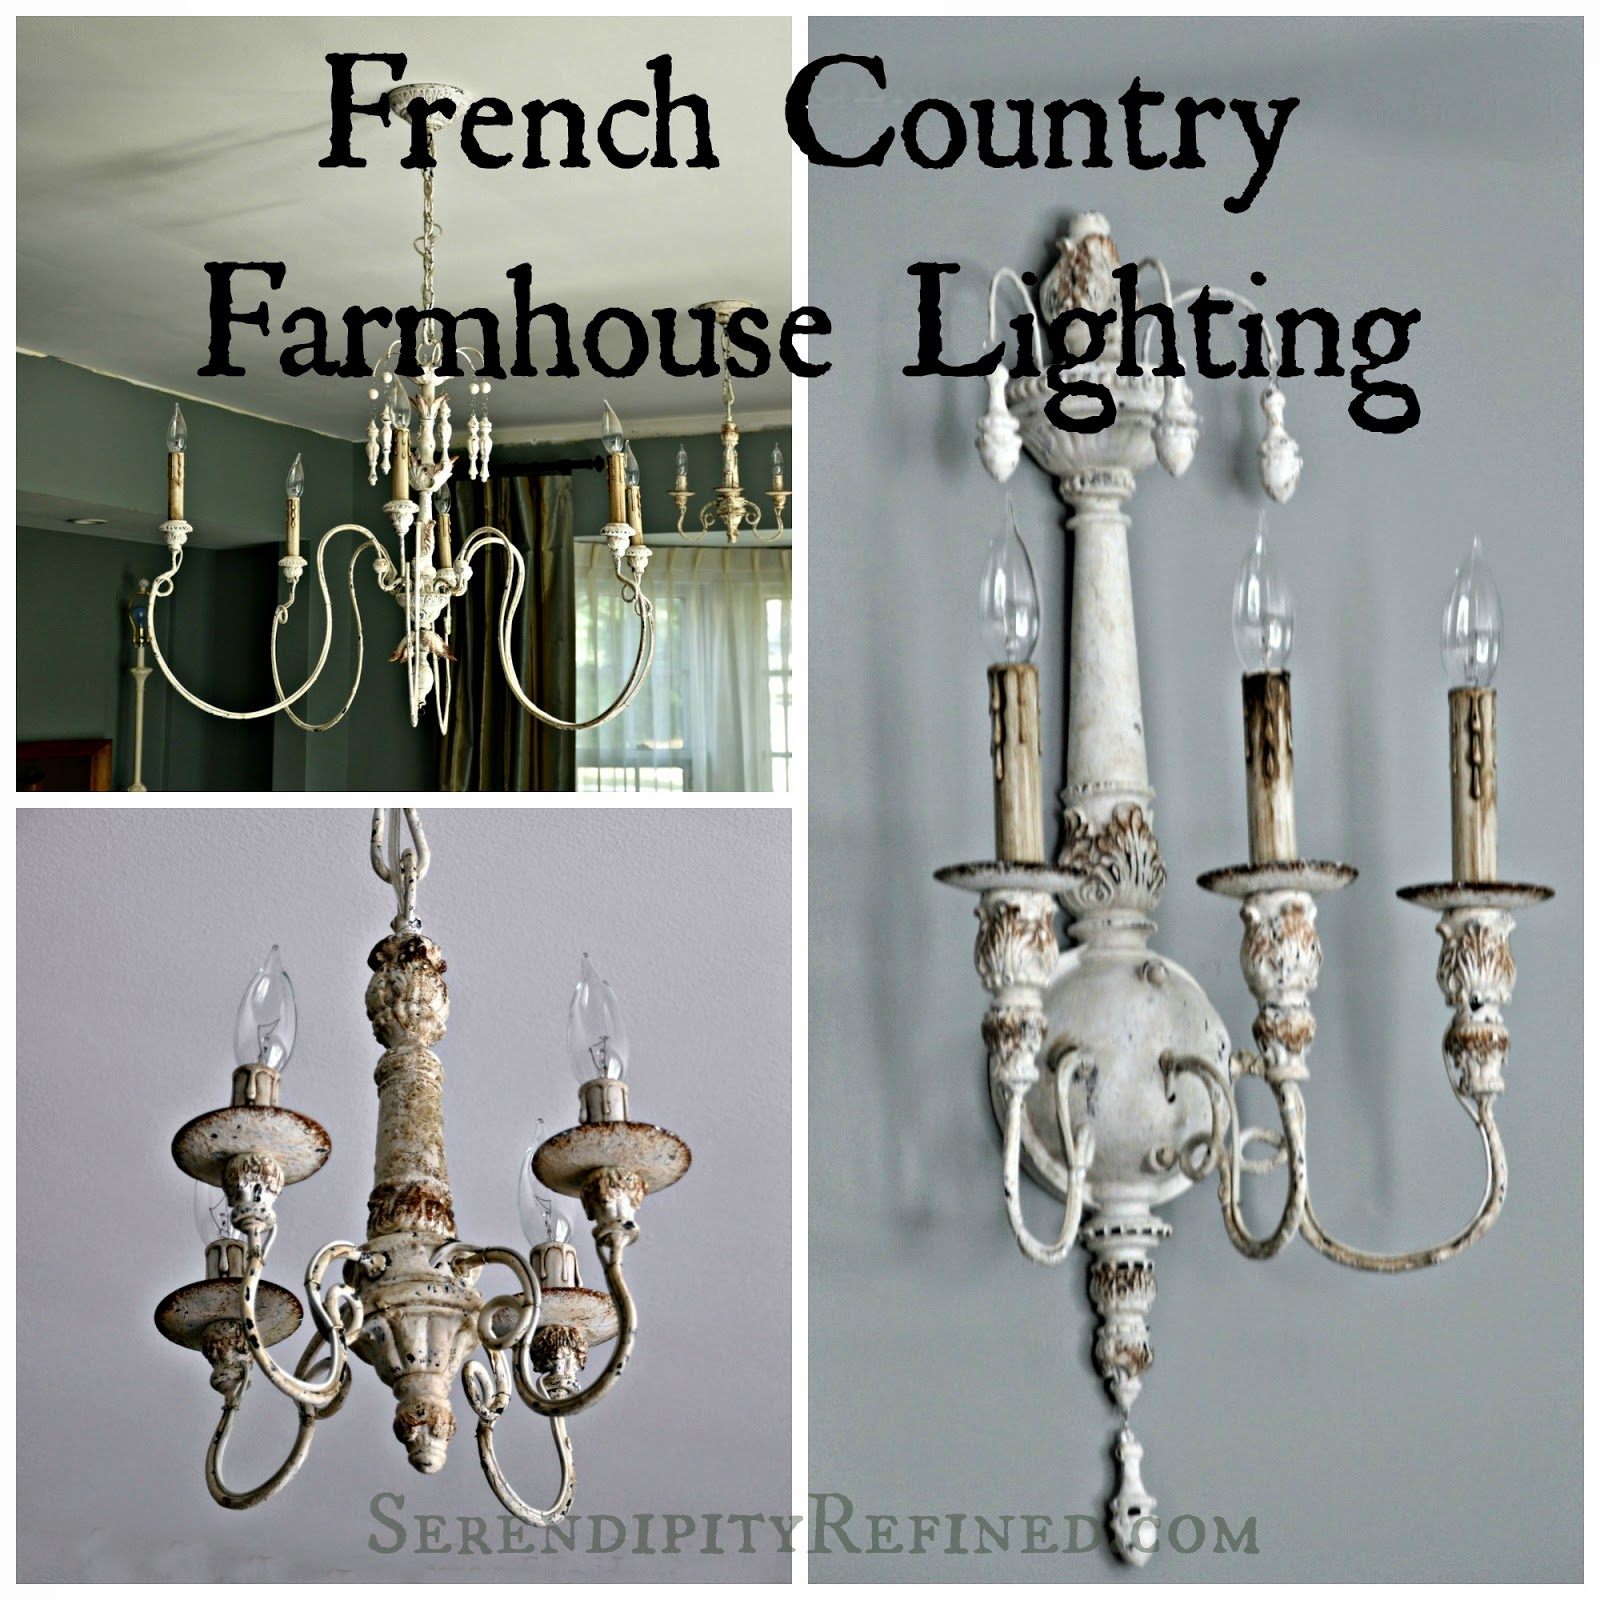 Cool French Country farmhouse style chandeliers and sconces with resources